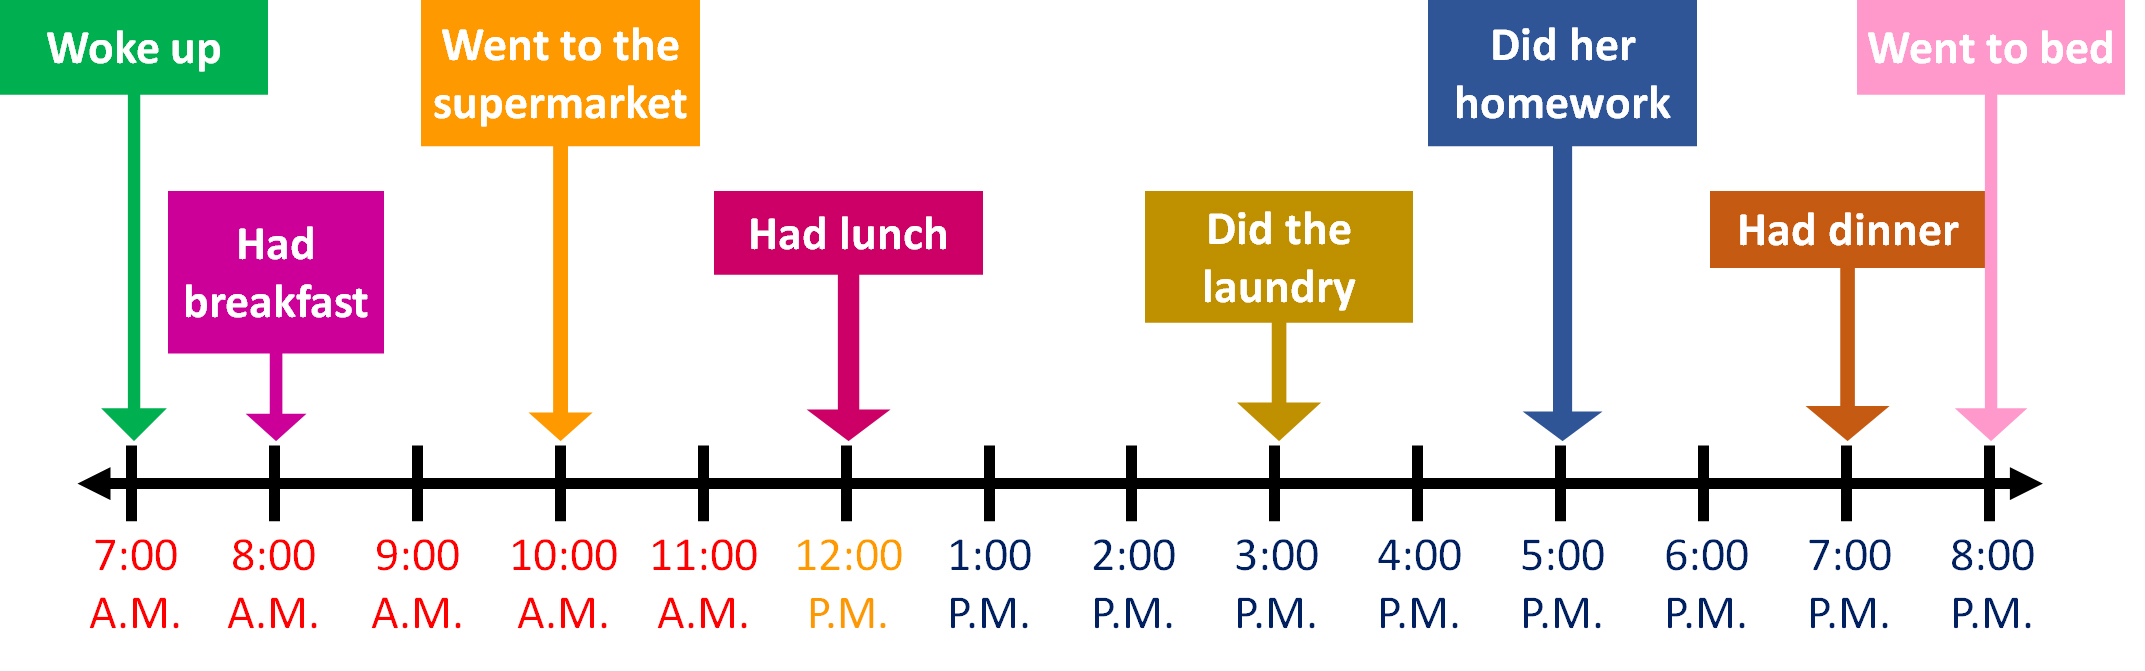 timeline of what Nelly did in a day